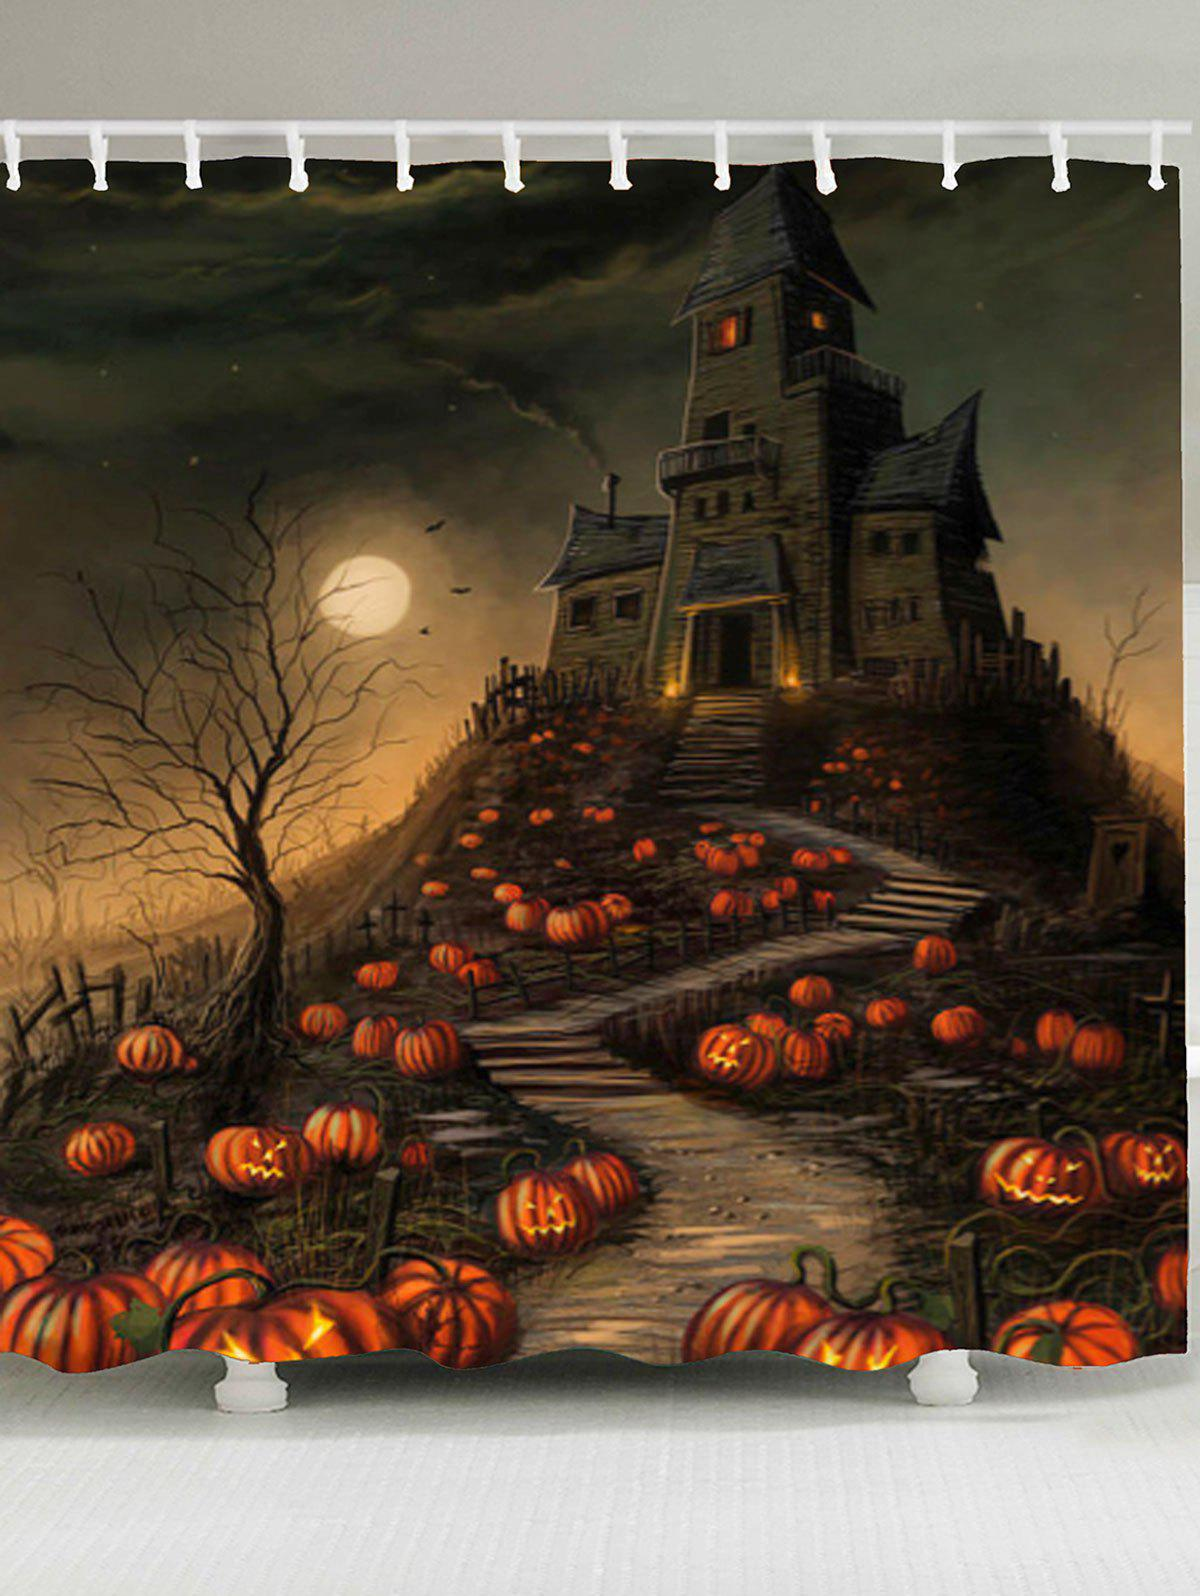 Waterproof Halloween Pumpkin Castle Print Shower CurtainHOME<br><br>Size: W79 INCH * L71 INCH; Color: COLORFUL; Products Type: Shower Curtains; Materials: Polyester; Pattern: Pumpkin; Style: Festival; Number of Hook Holes: W59 inch*L71 inch: 10; W65 inch*L71 inch: 12; W71 inch*L71 inch: 12; W79 inch*L71 inch: 12; Package Contents: 1 x Shower Curtain 1 x Hooks (Set);